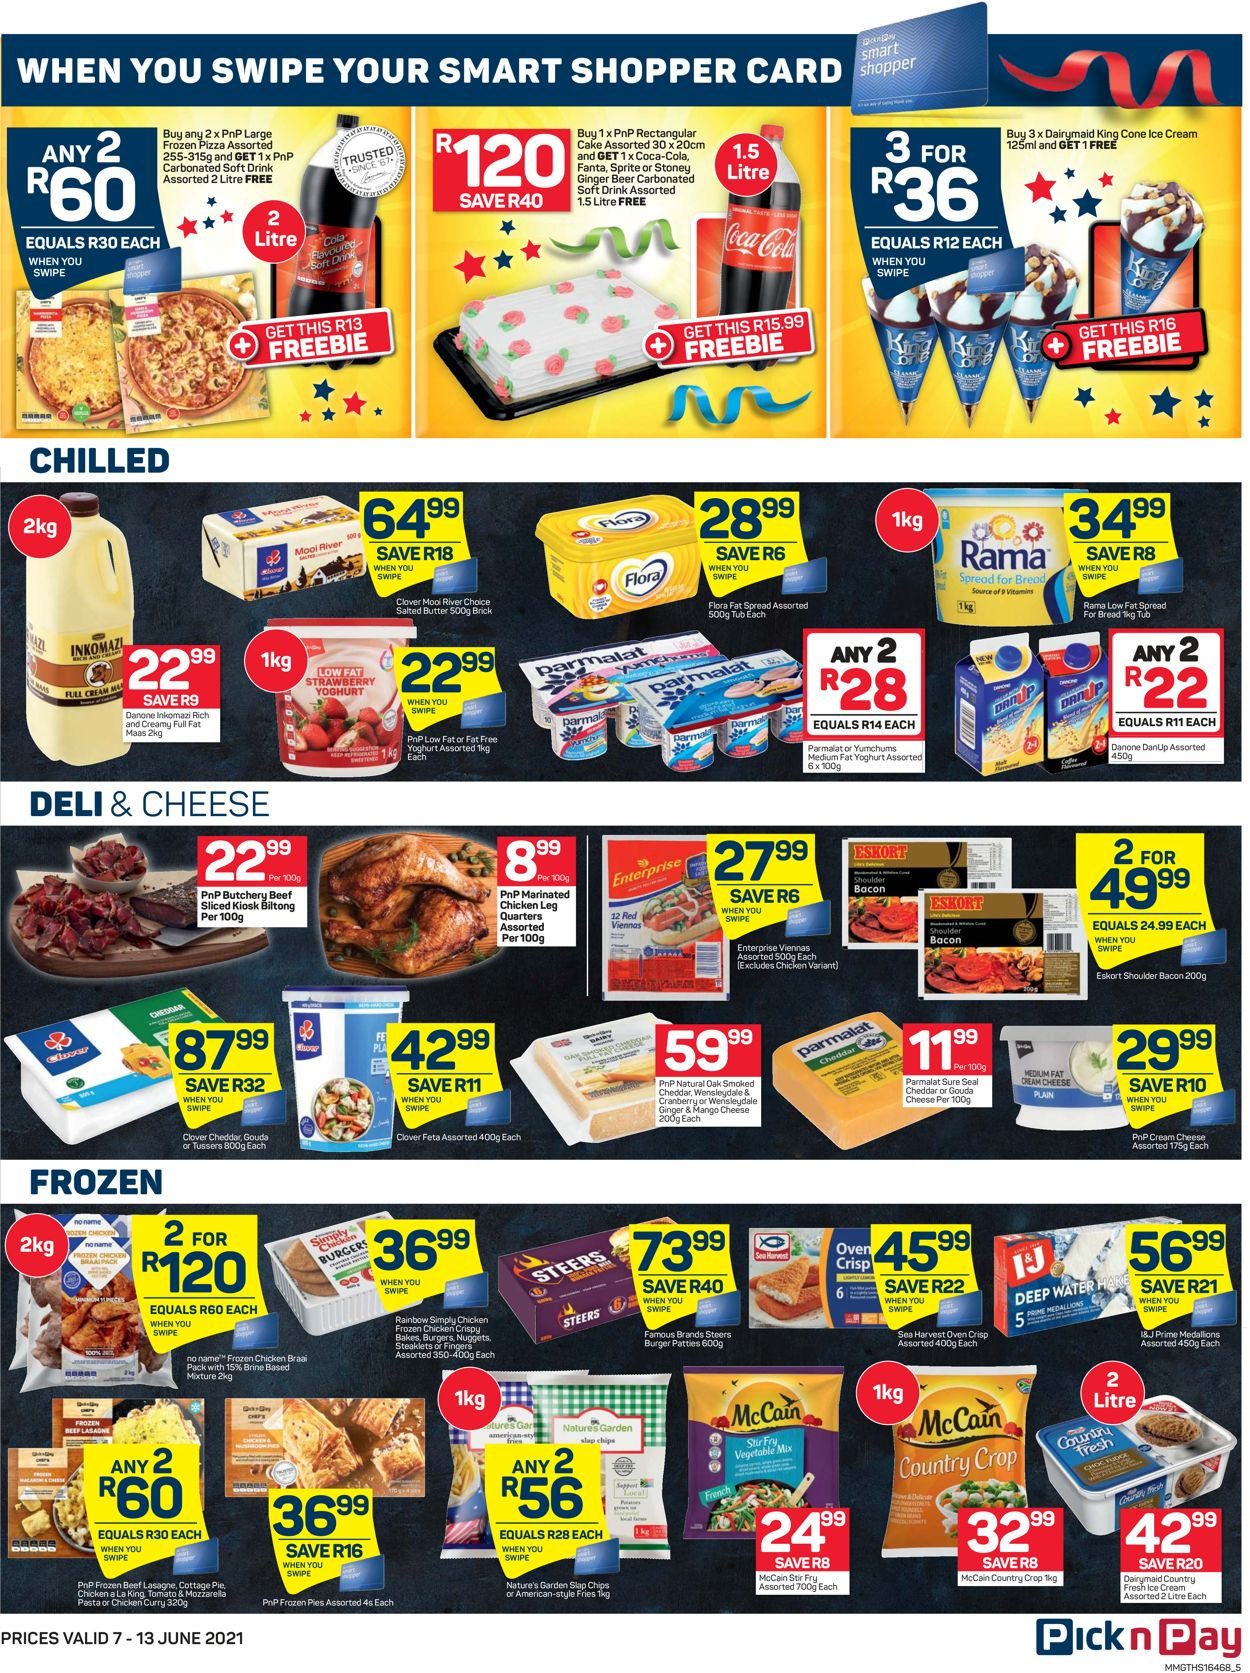 Pick n Pay Catalogue - 2021/06/07-2021/06/13 (Page 5)